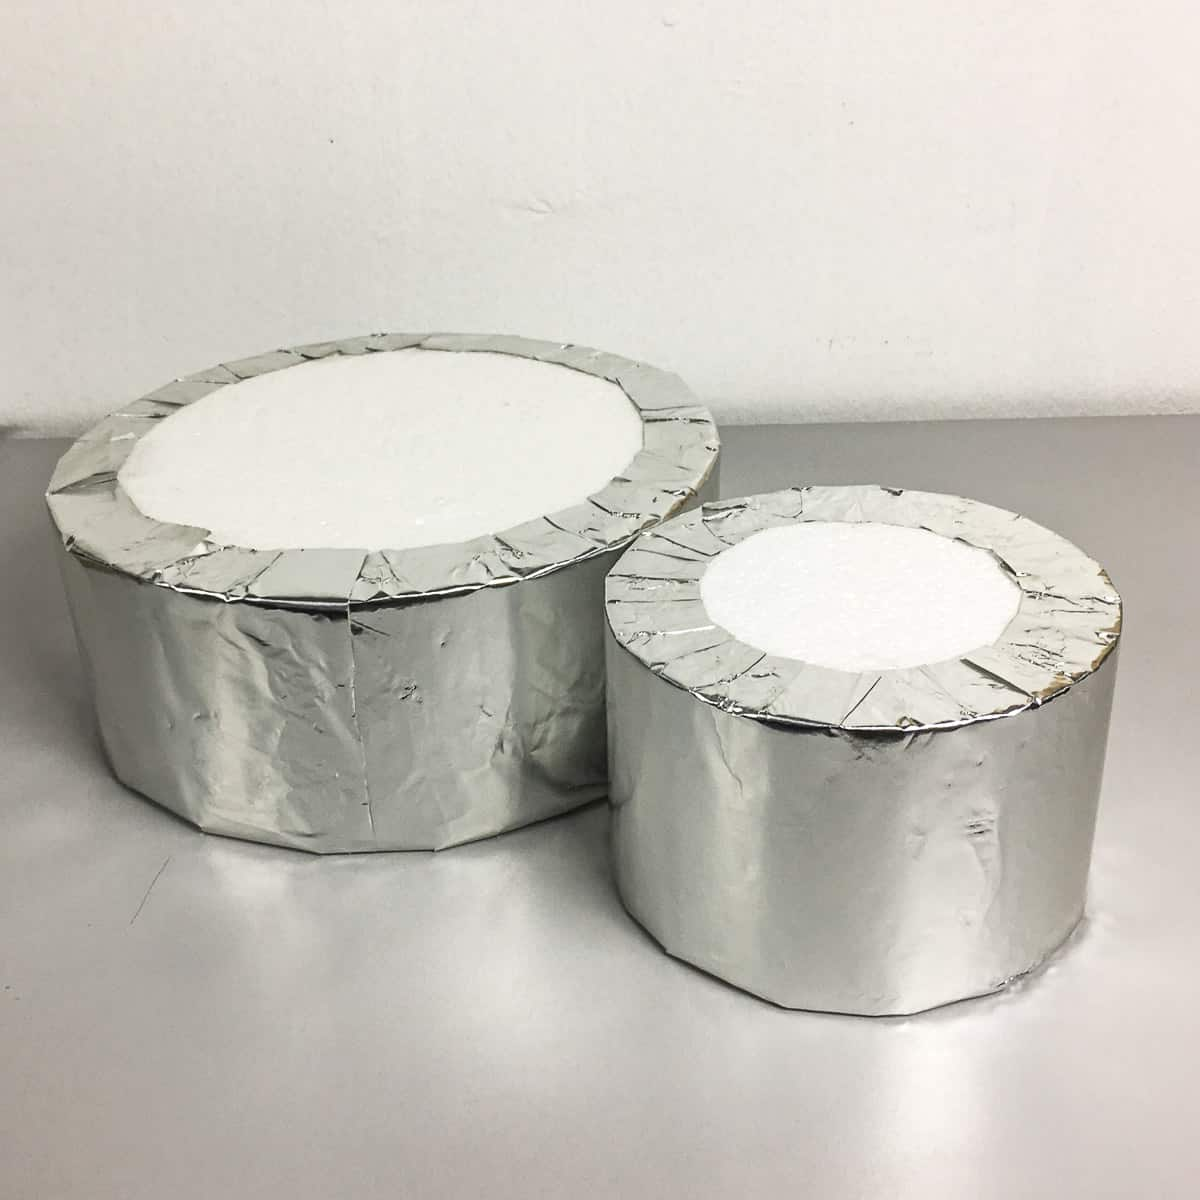 2 pieces of styrofoam blocks wrapped in silver paper.